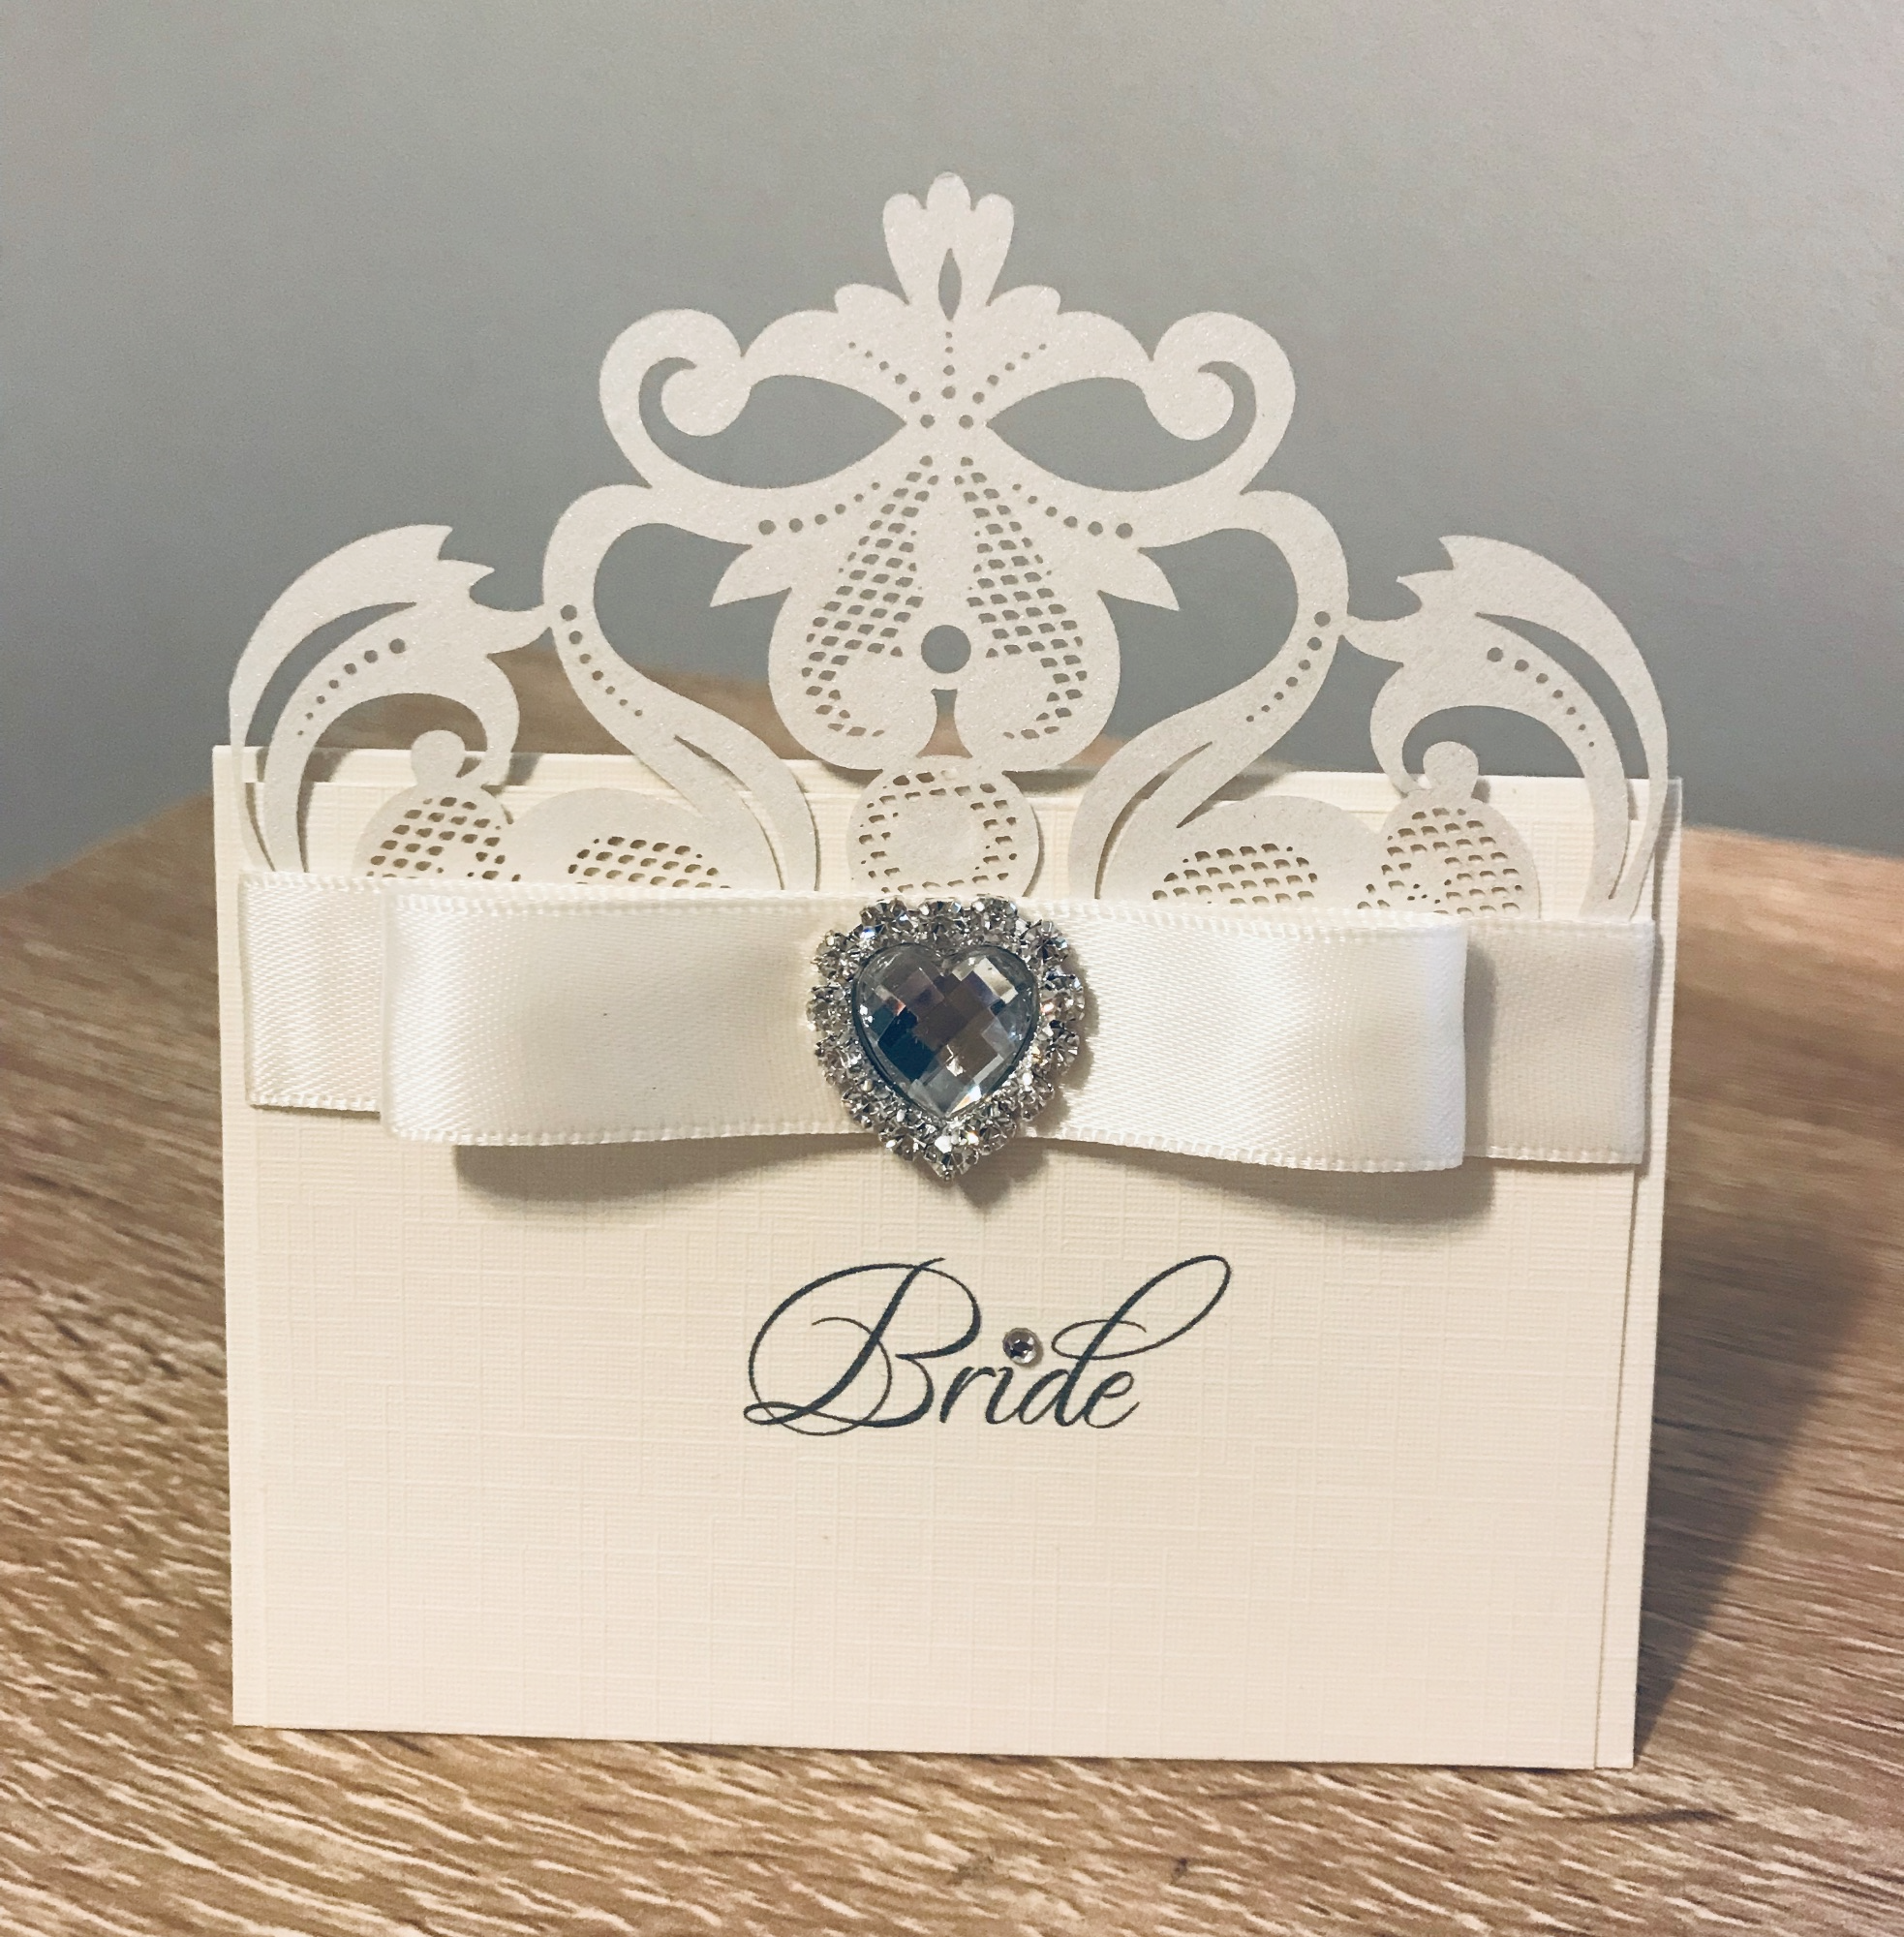 Laser cut place name card with ivory cream ribbon and heart brooch